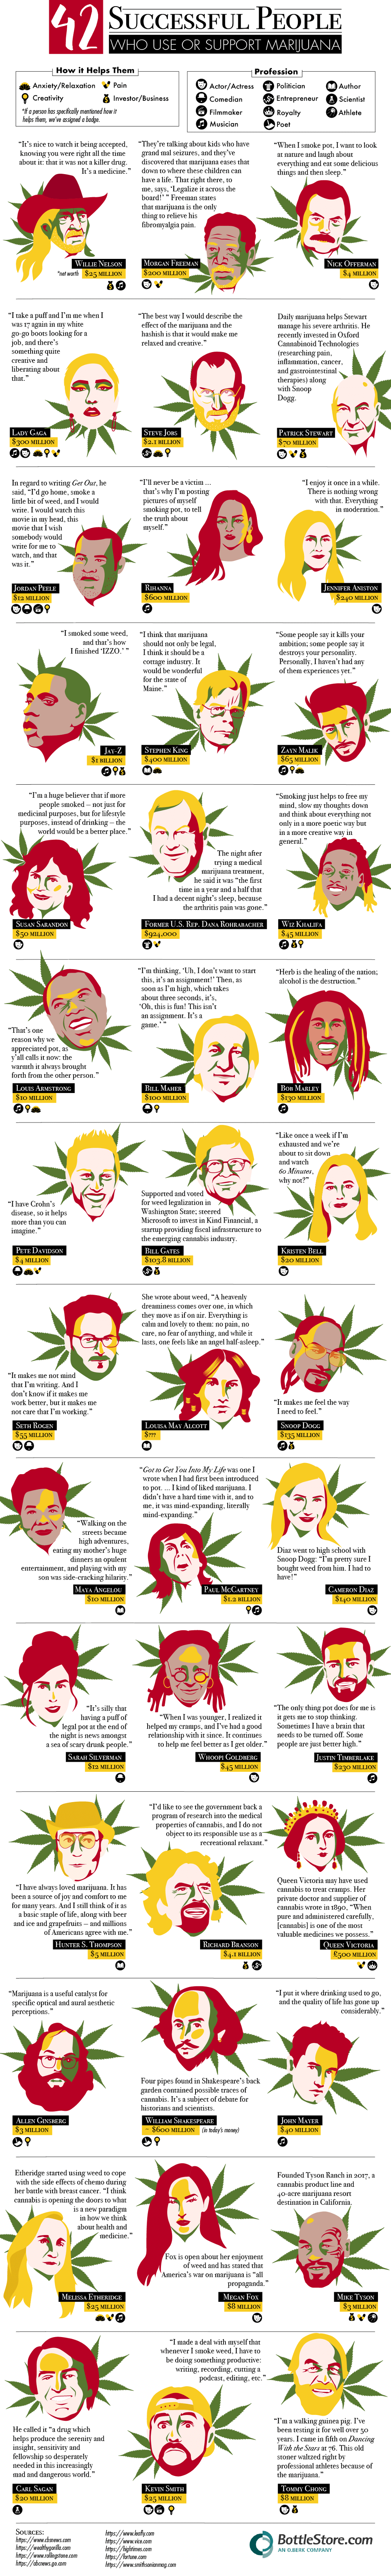 42 Successful People Who Use Support Marijuana